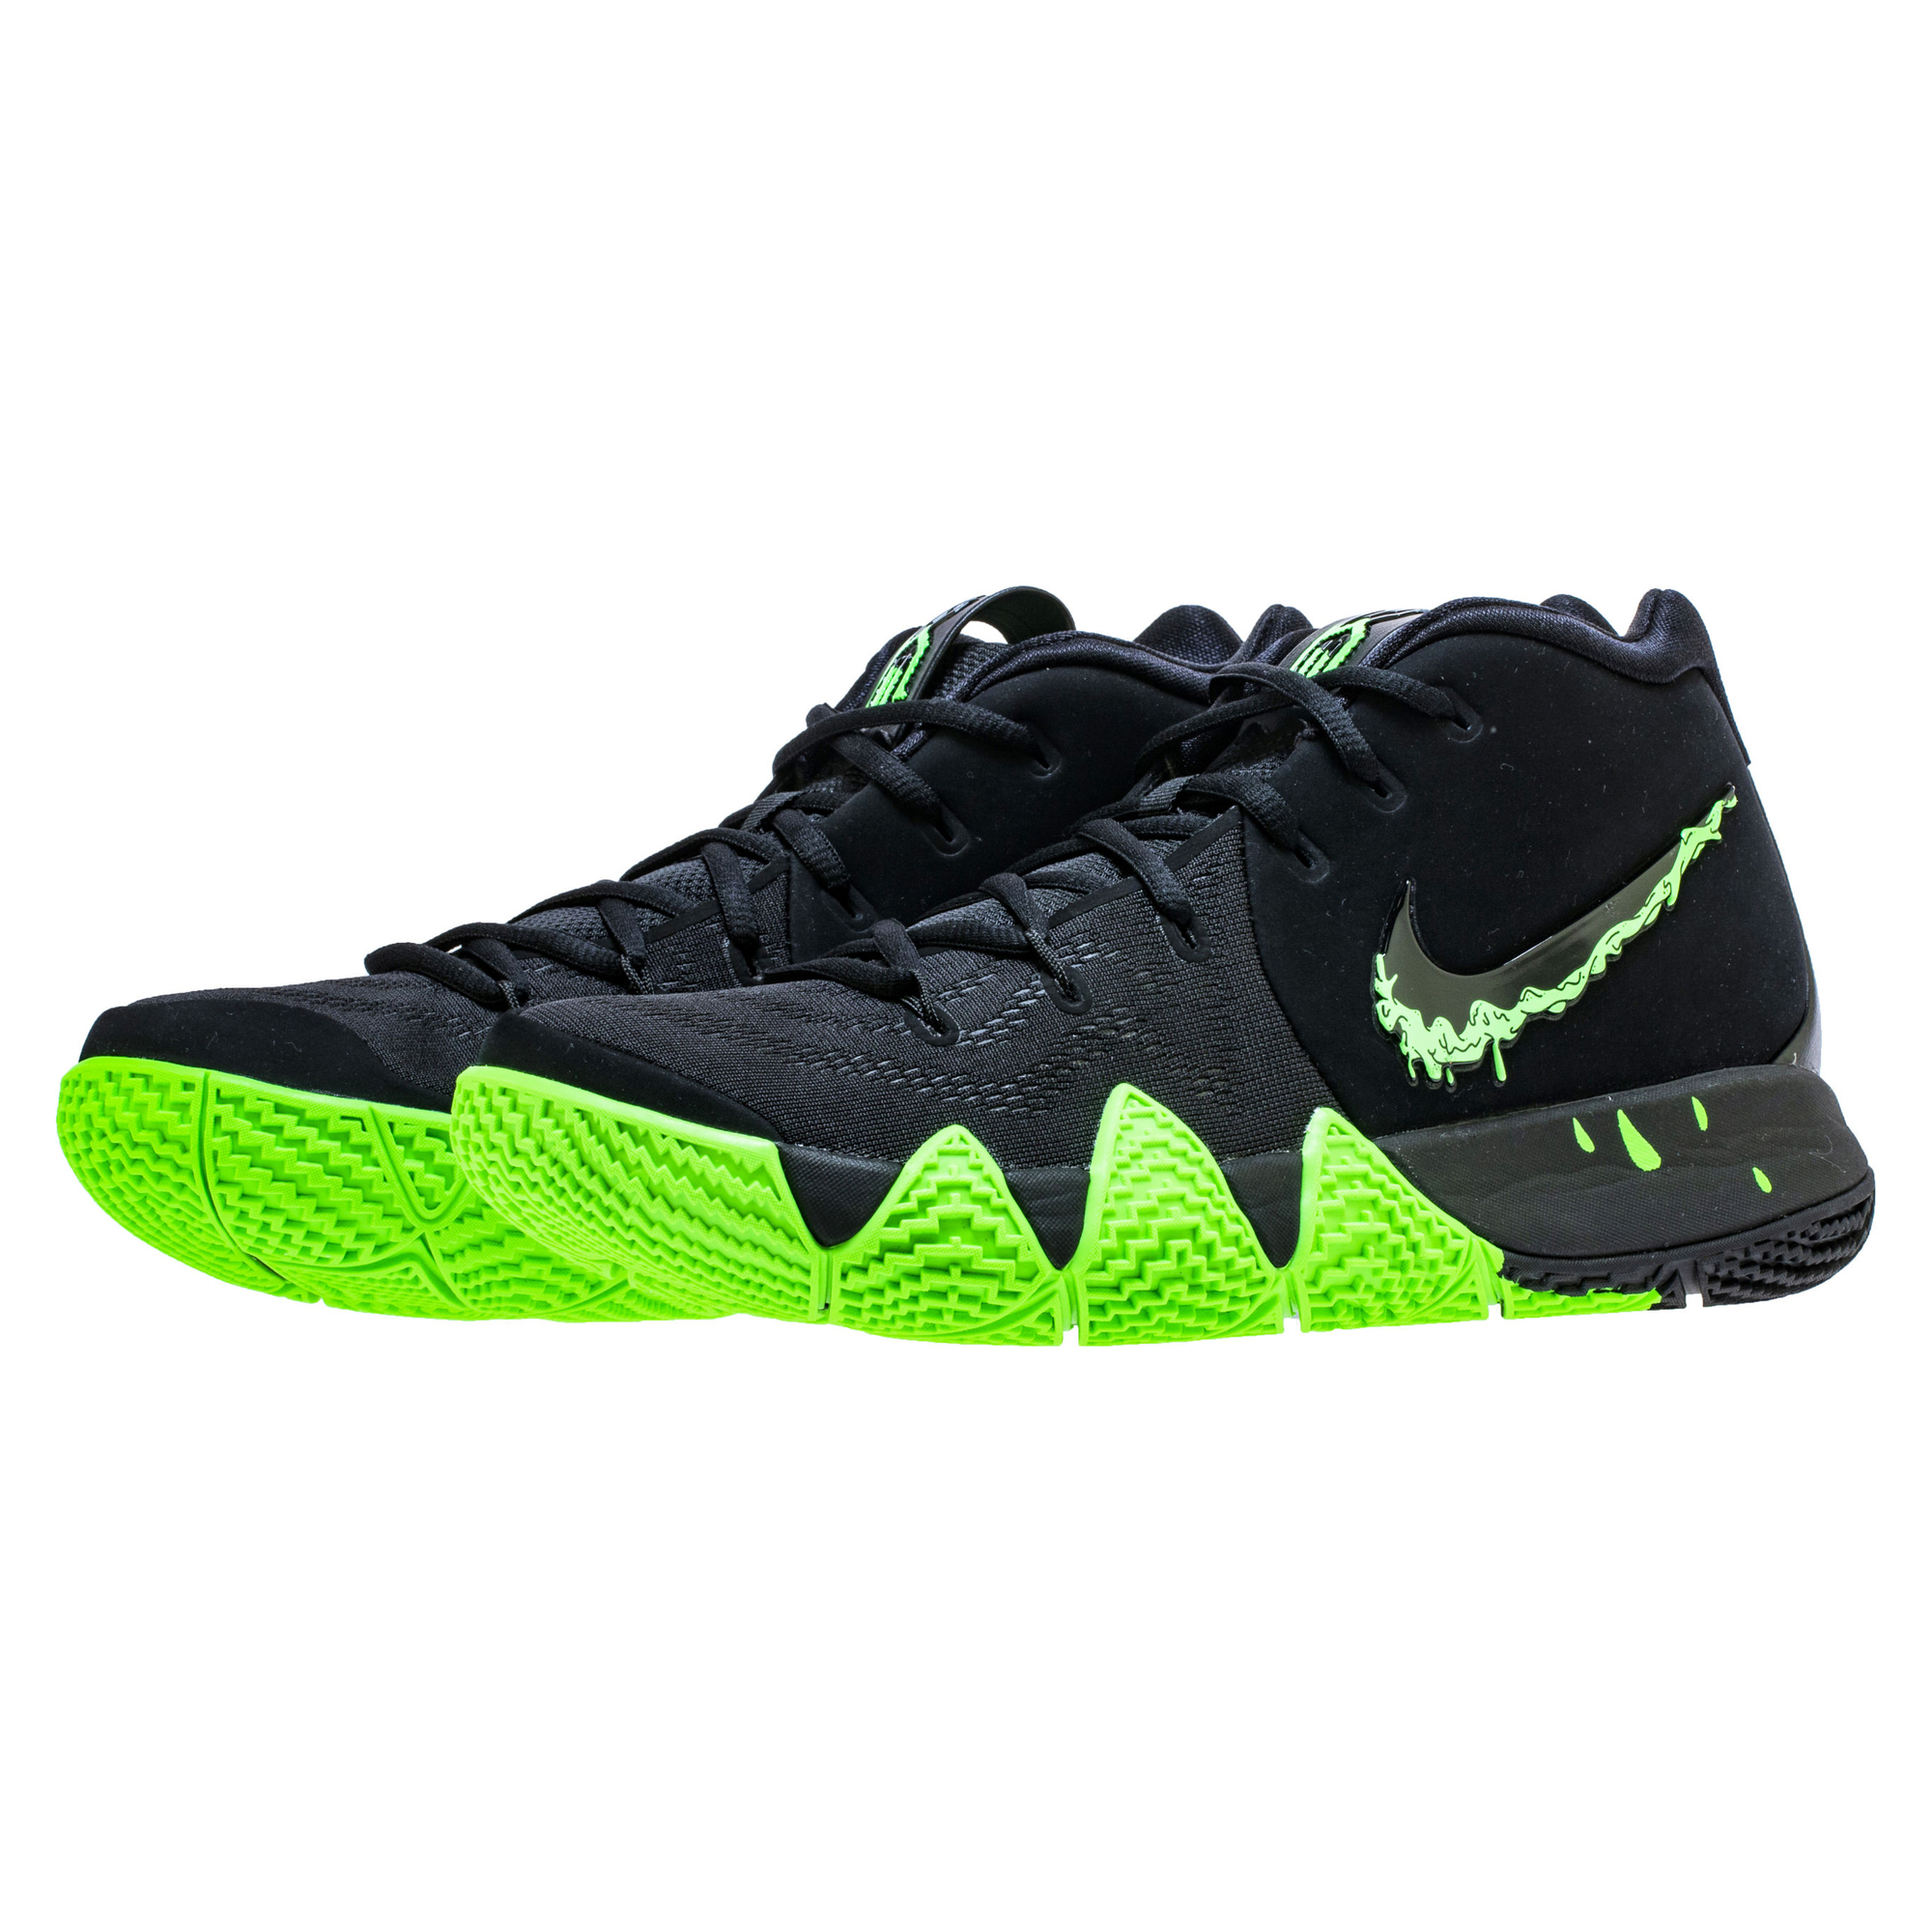 the latest 7b48d 25faf Kyrie Irving's Latest Kyrie 4 Gets Slimed - WearTesters